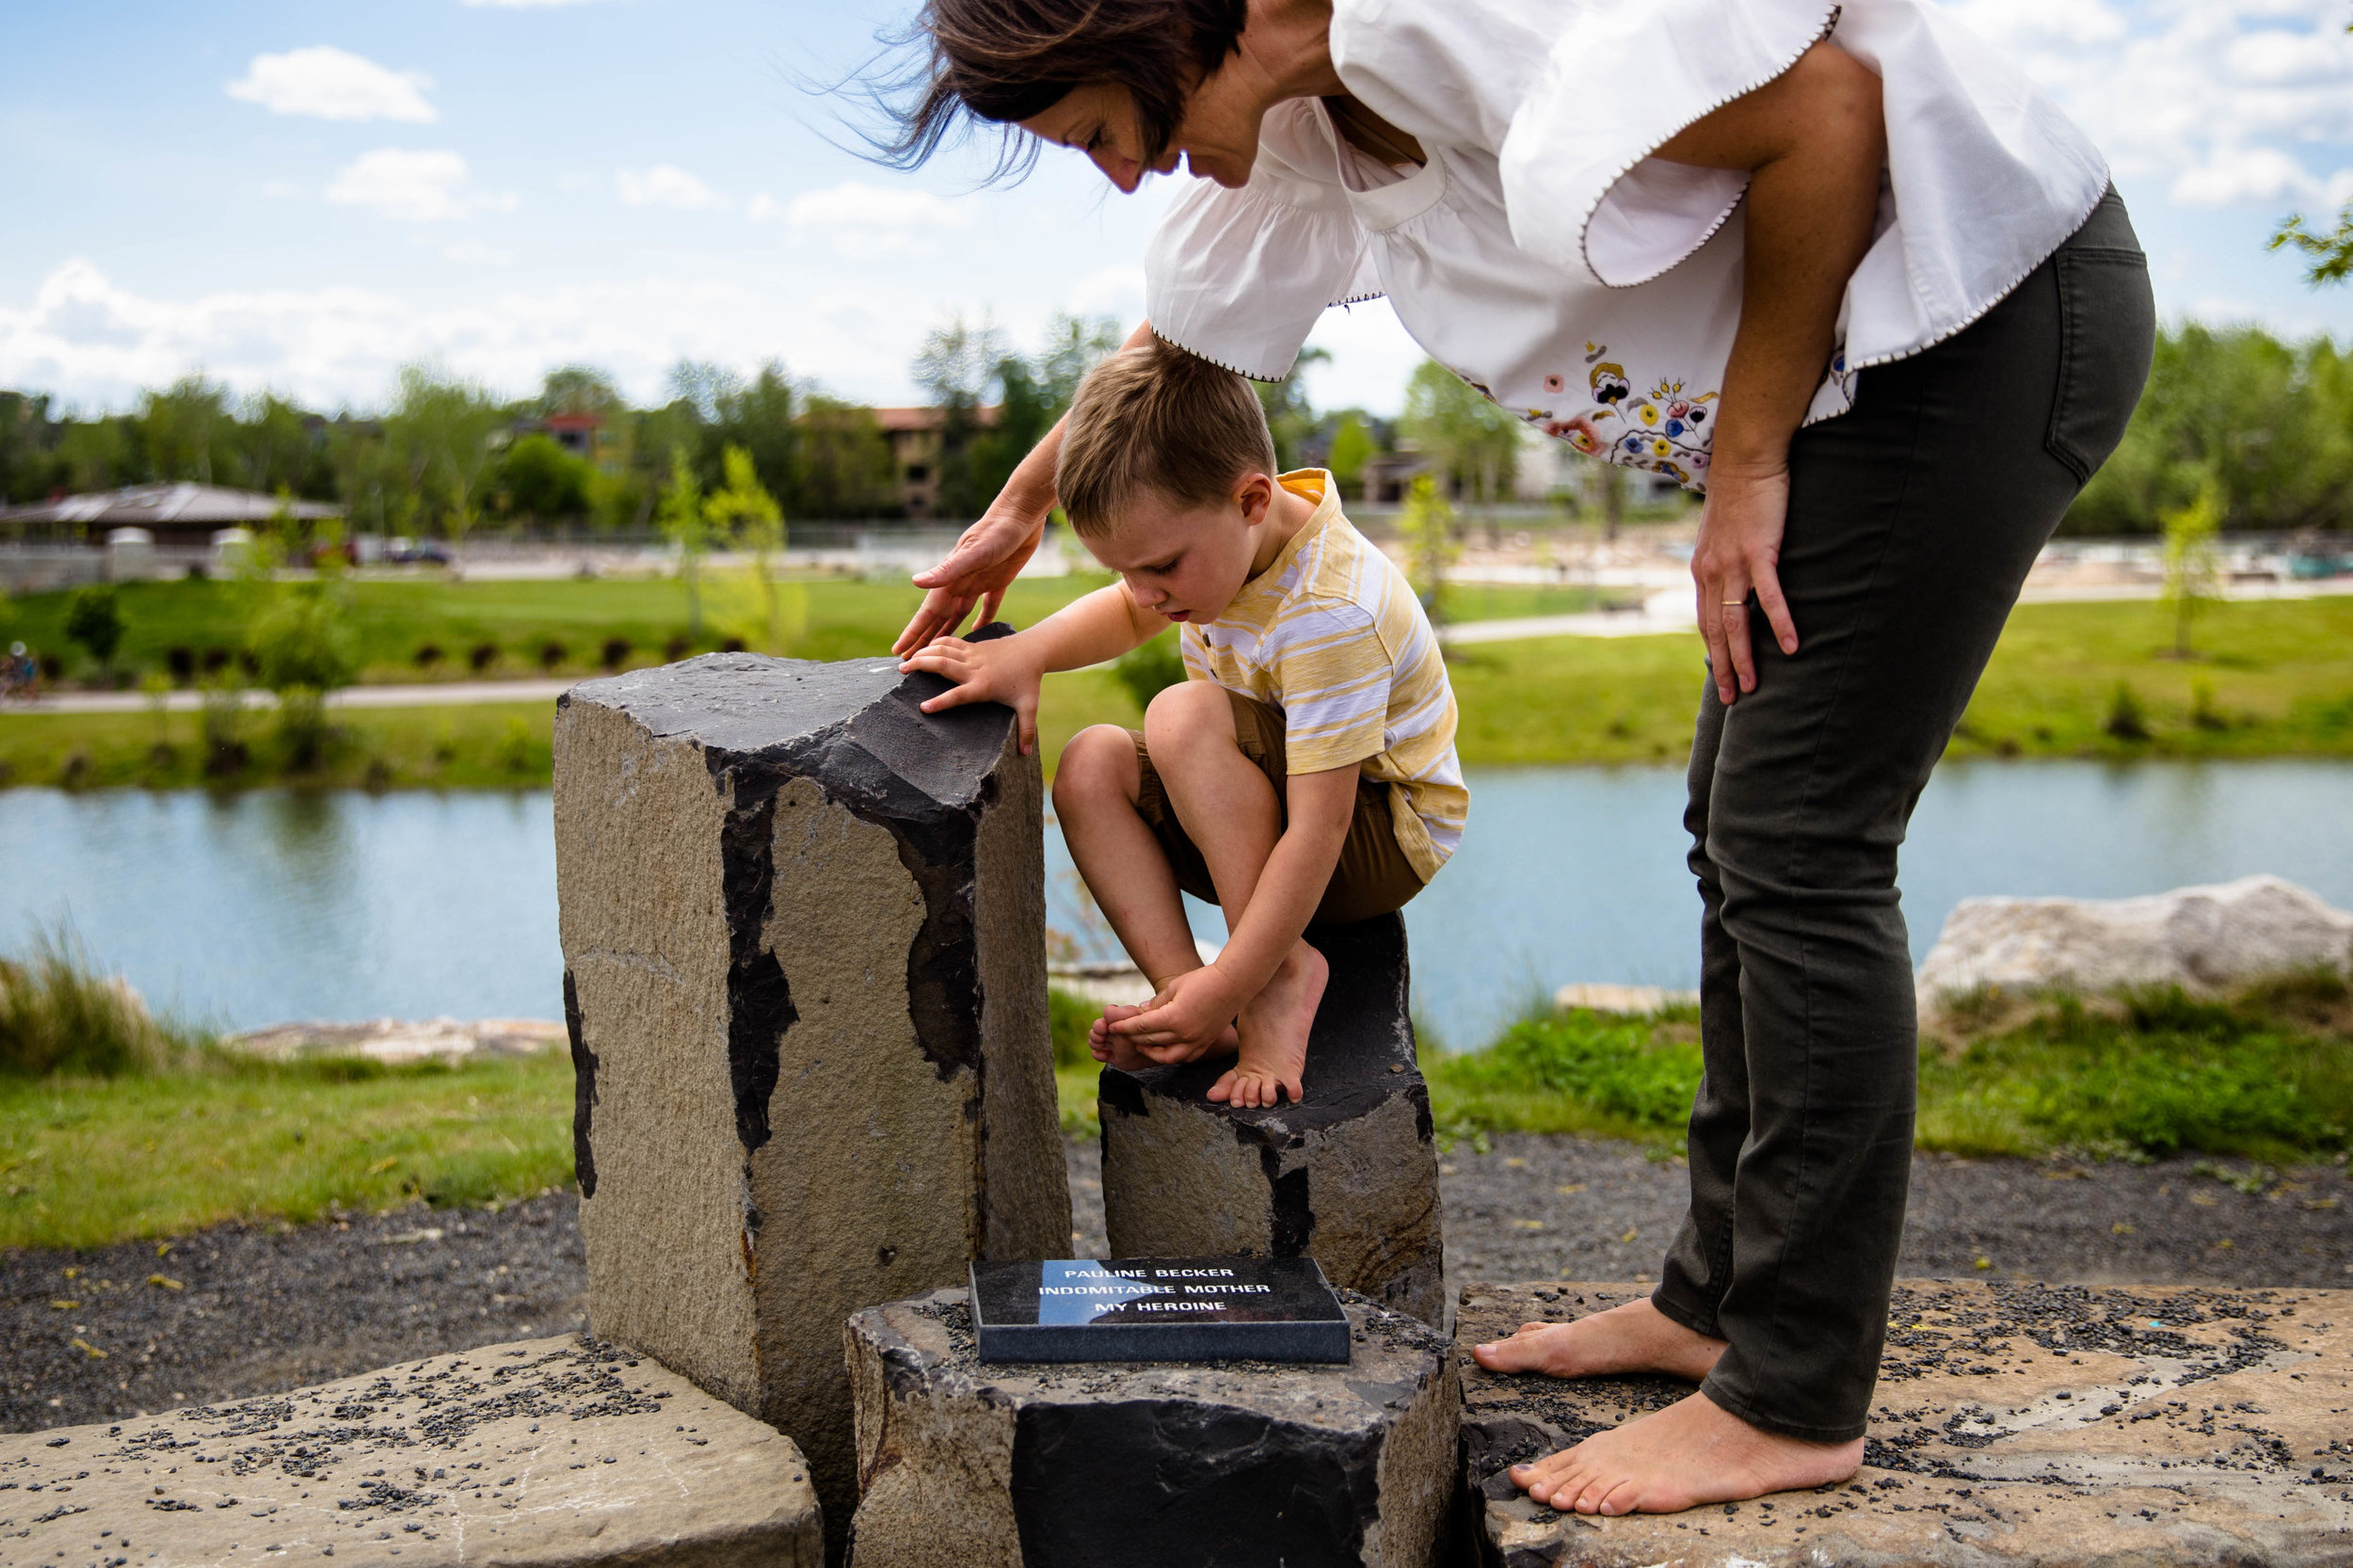 Mom looking down at son with smiles as he shows her his foot. Sitting in front of quinns pond. Esther simply park in boise Idaho.